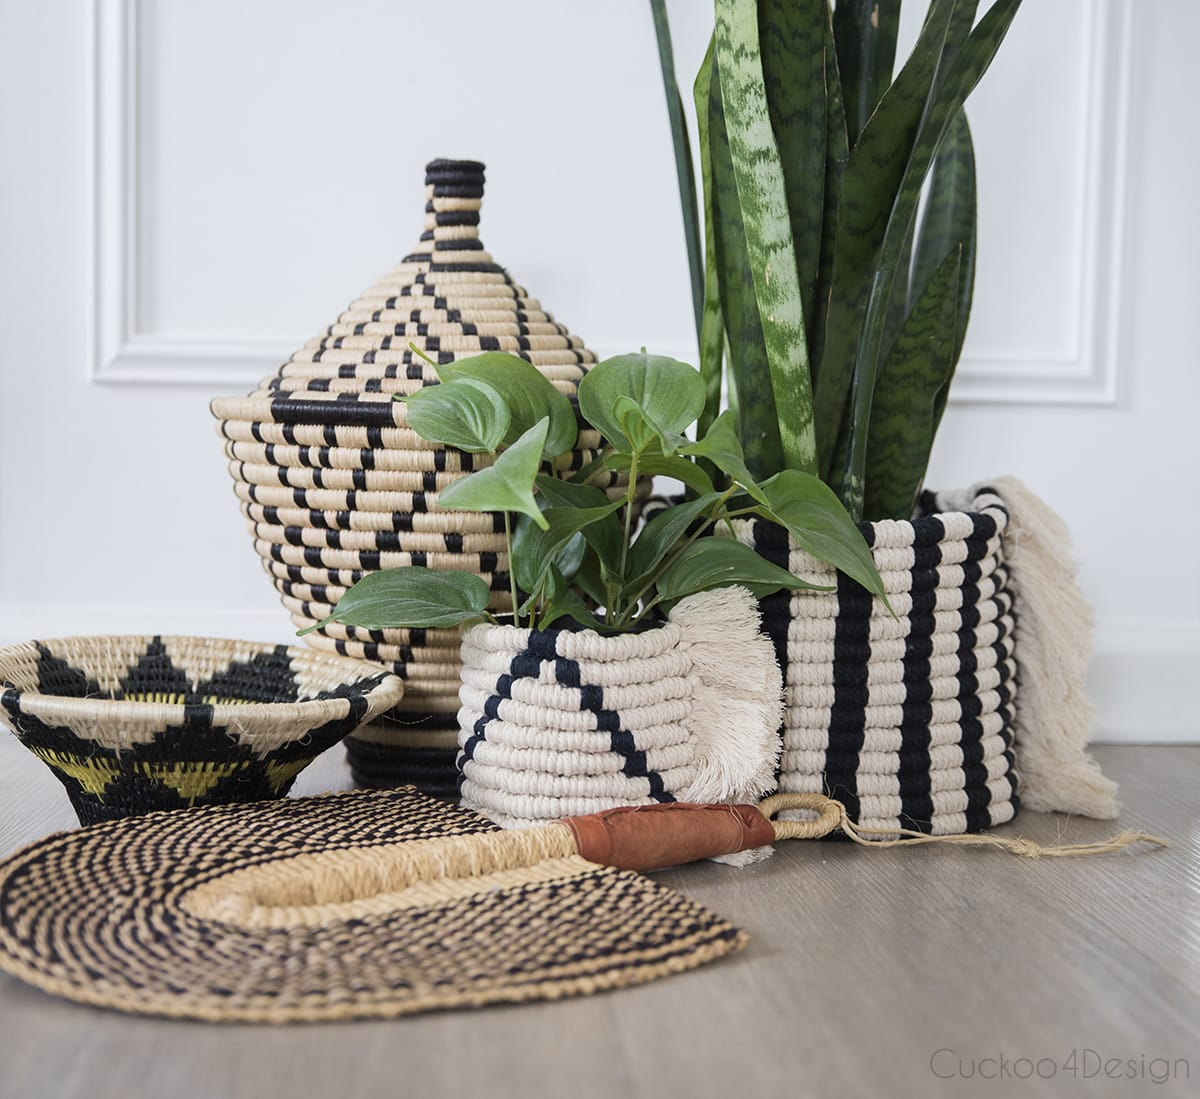 macrame planters inspired by African baskets